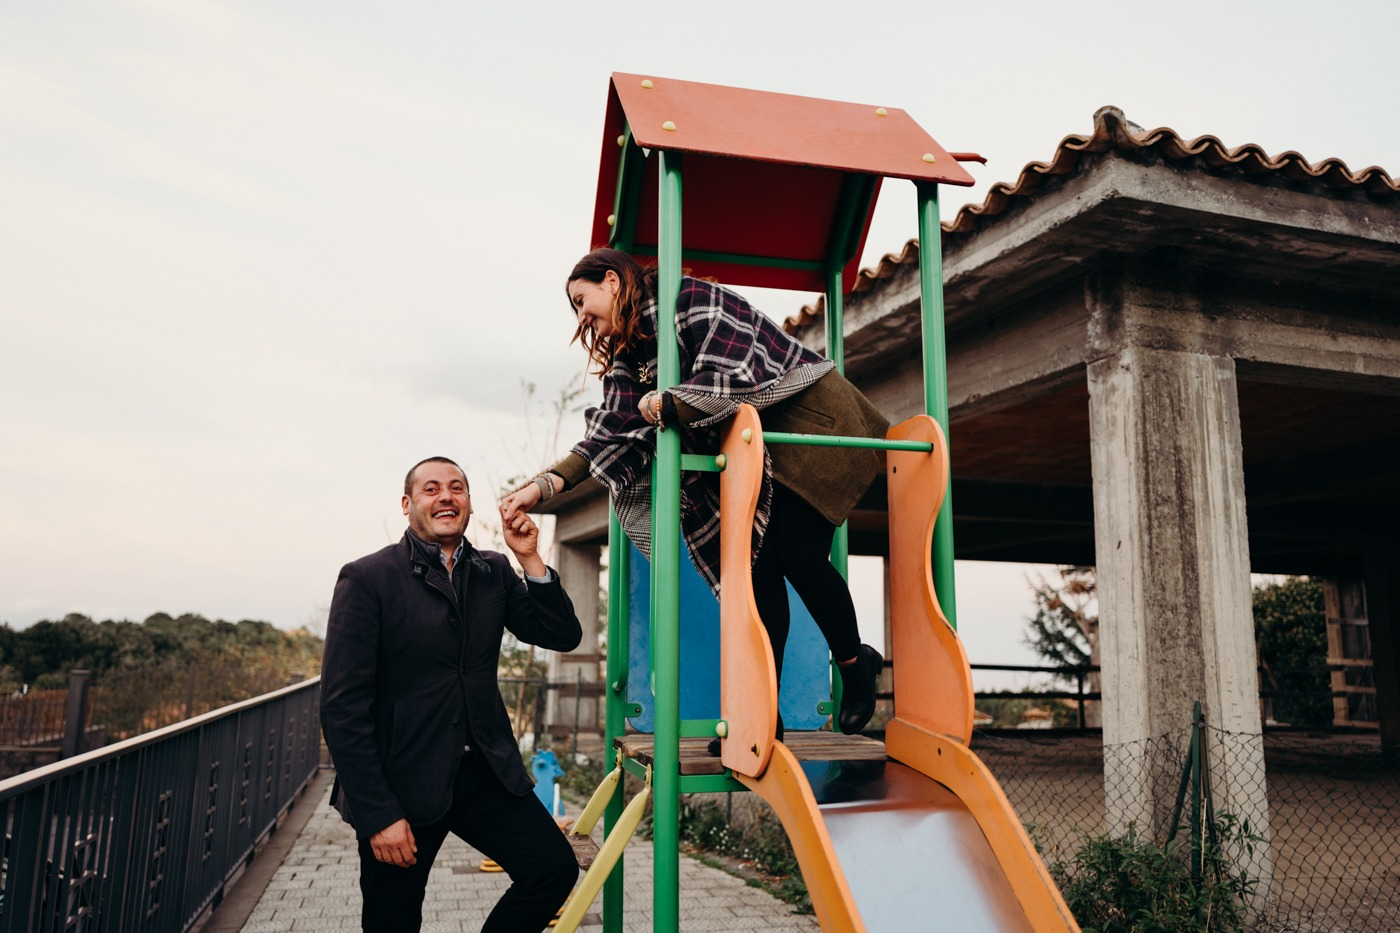 Photo shooting of dear friends Annamaria & Damiano - Giuseppe Torretta